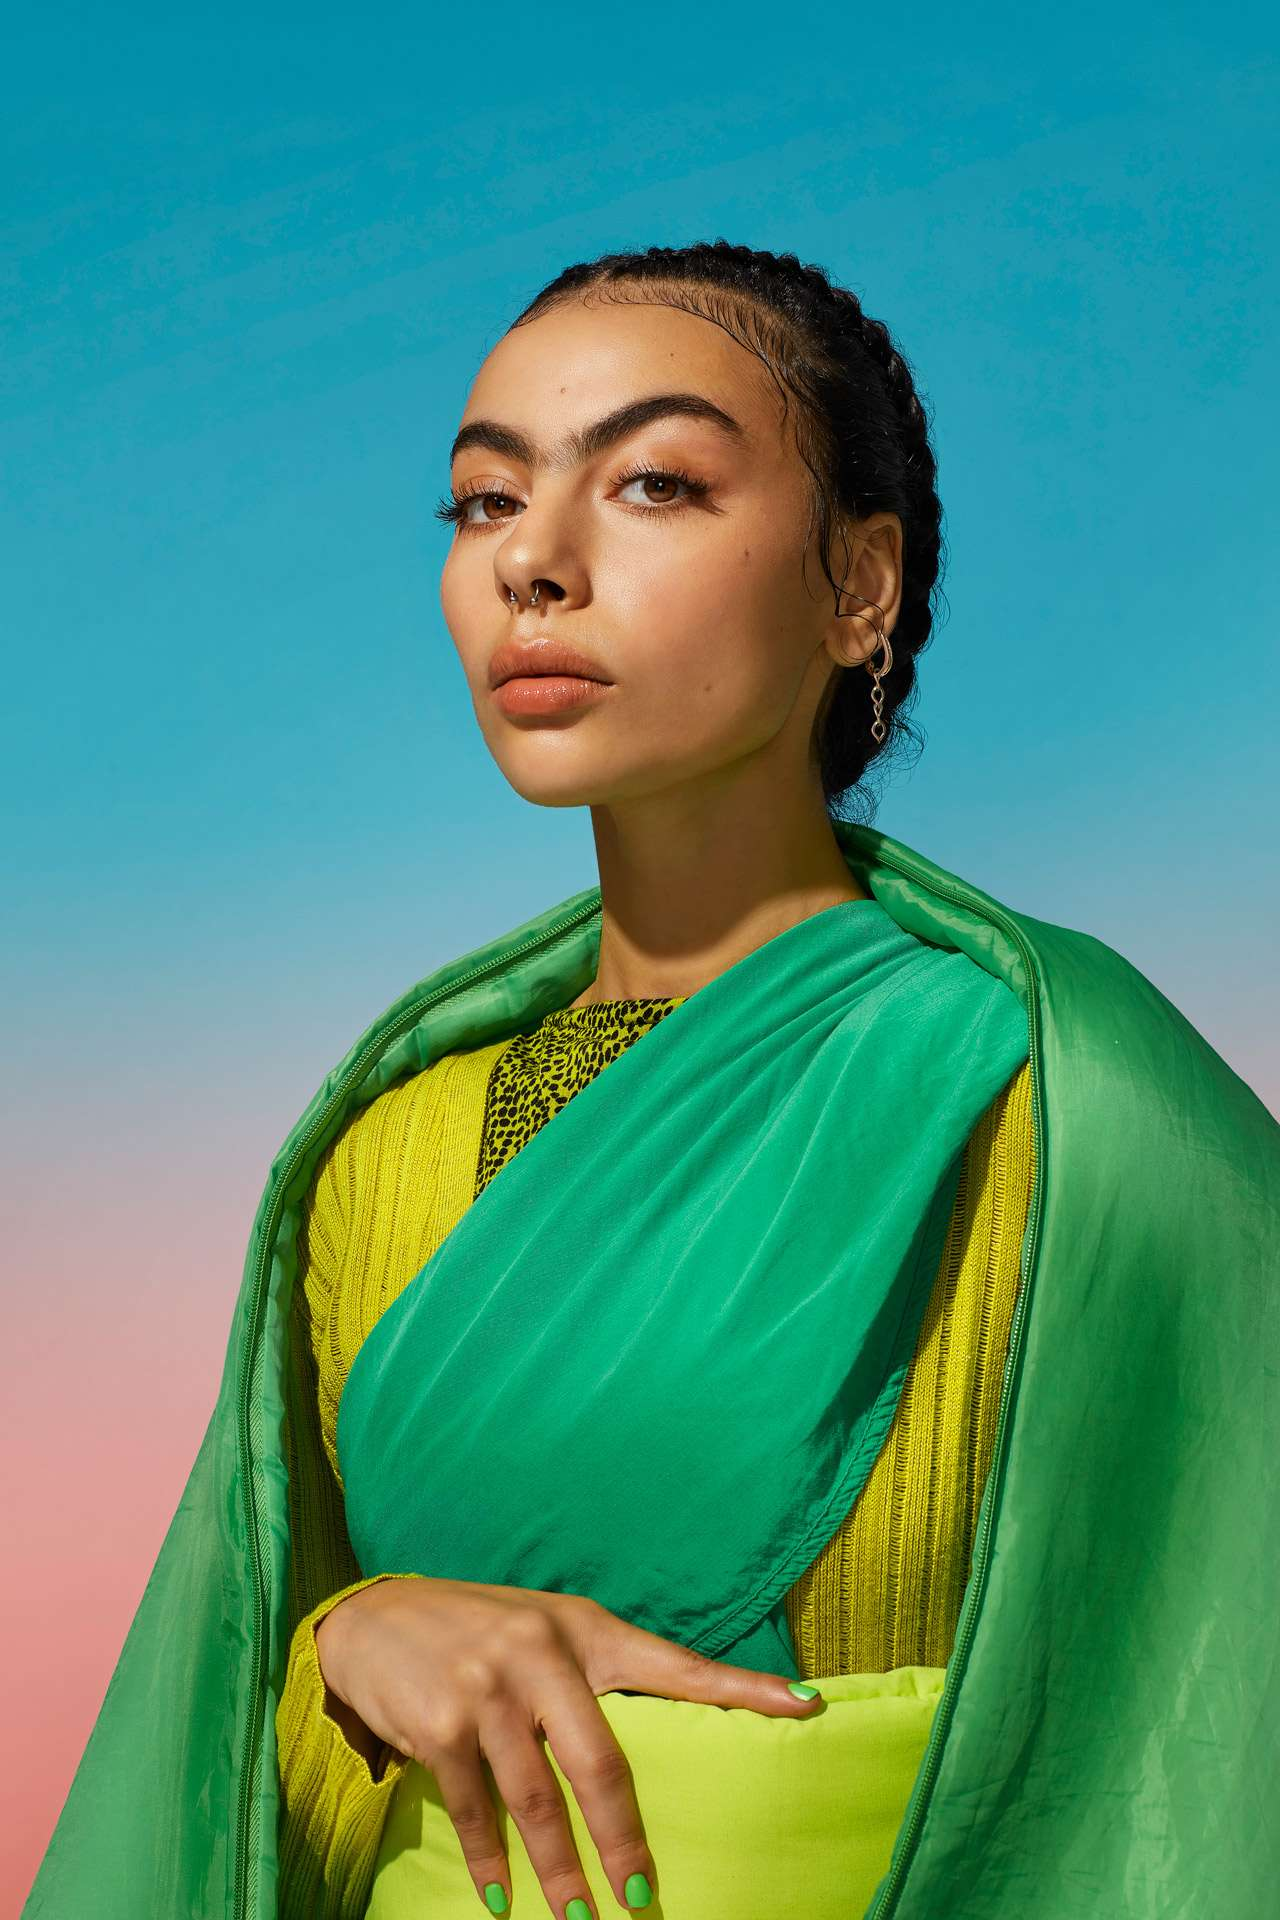 woman of indian origin looking at camera in layered pieces of green fabric giving a sari feel by Simon Duhamel for SAND